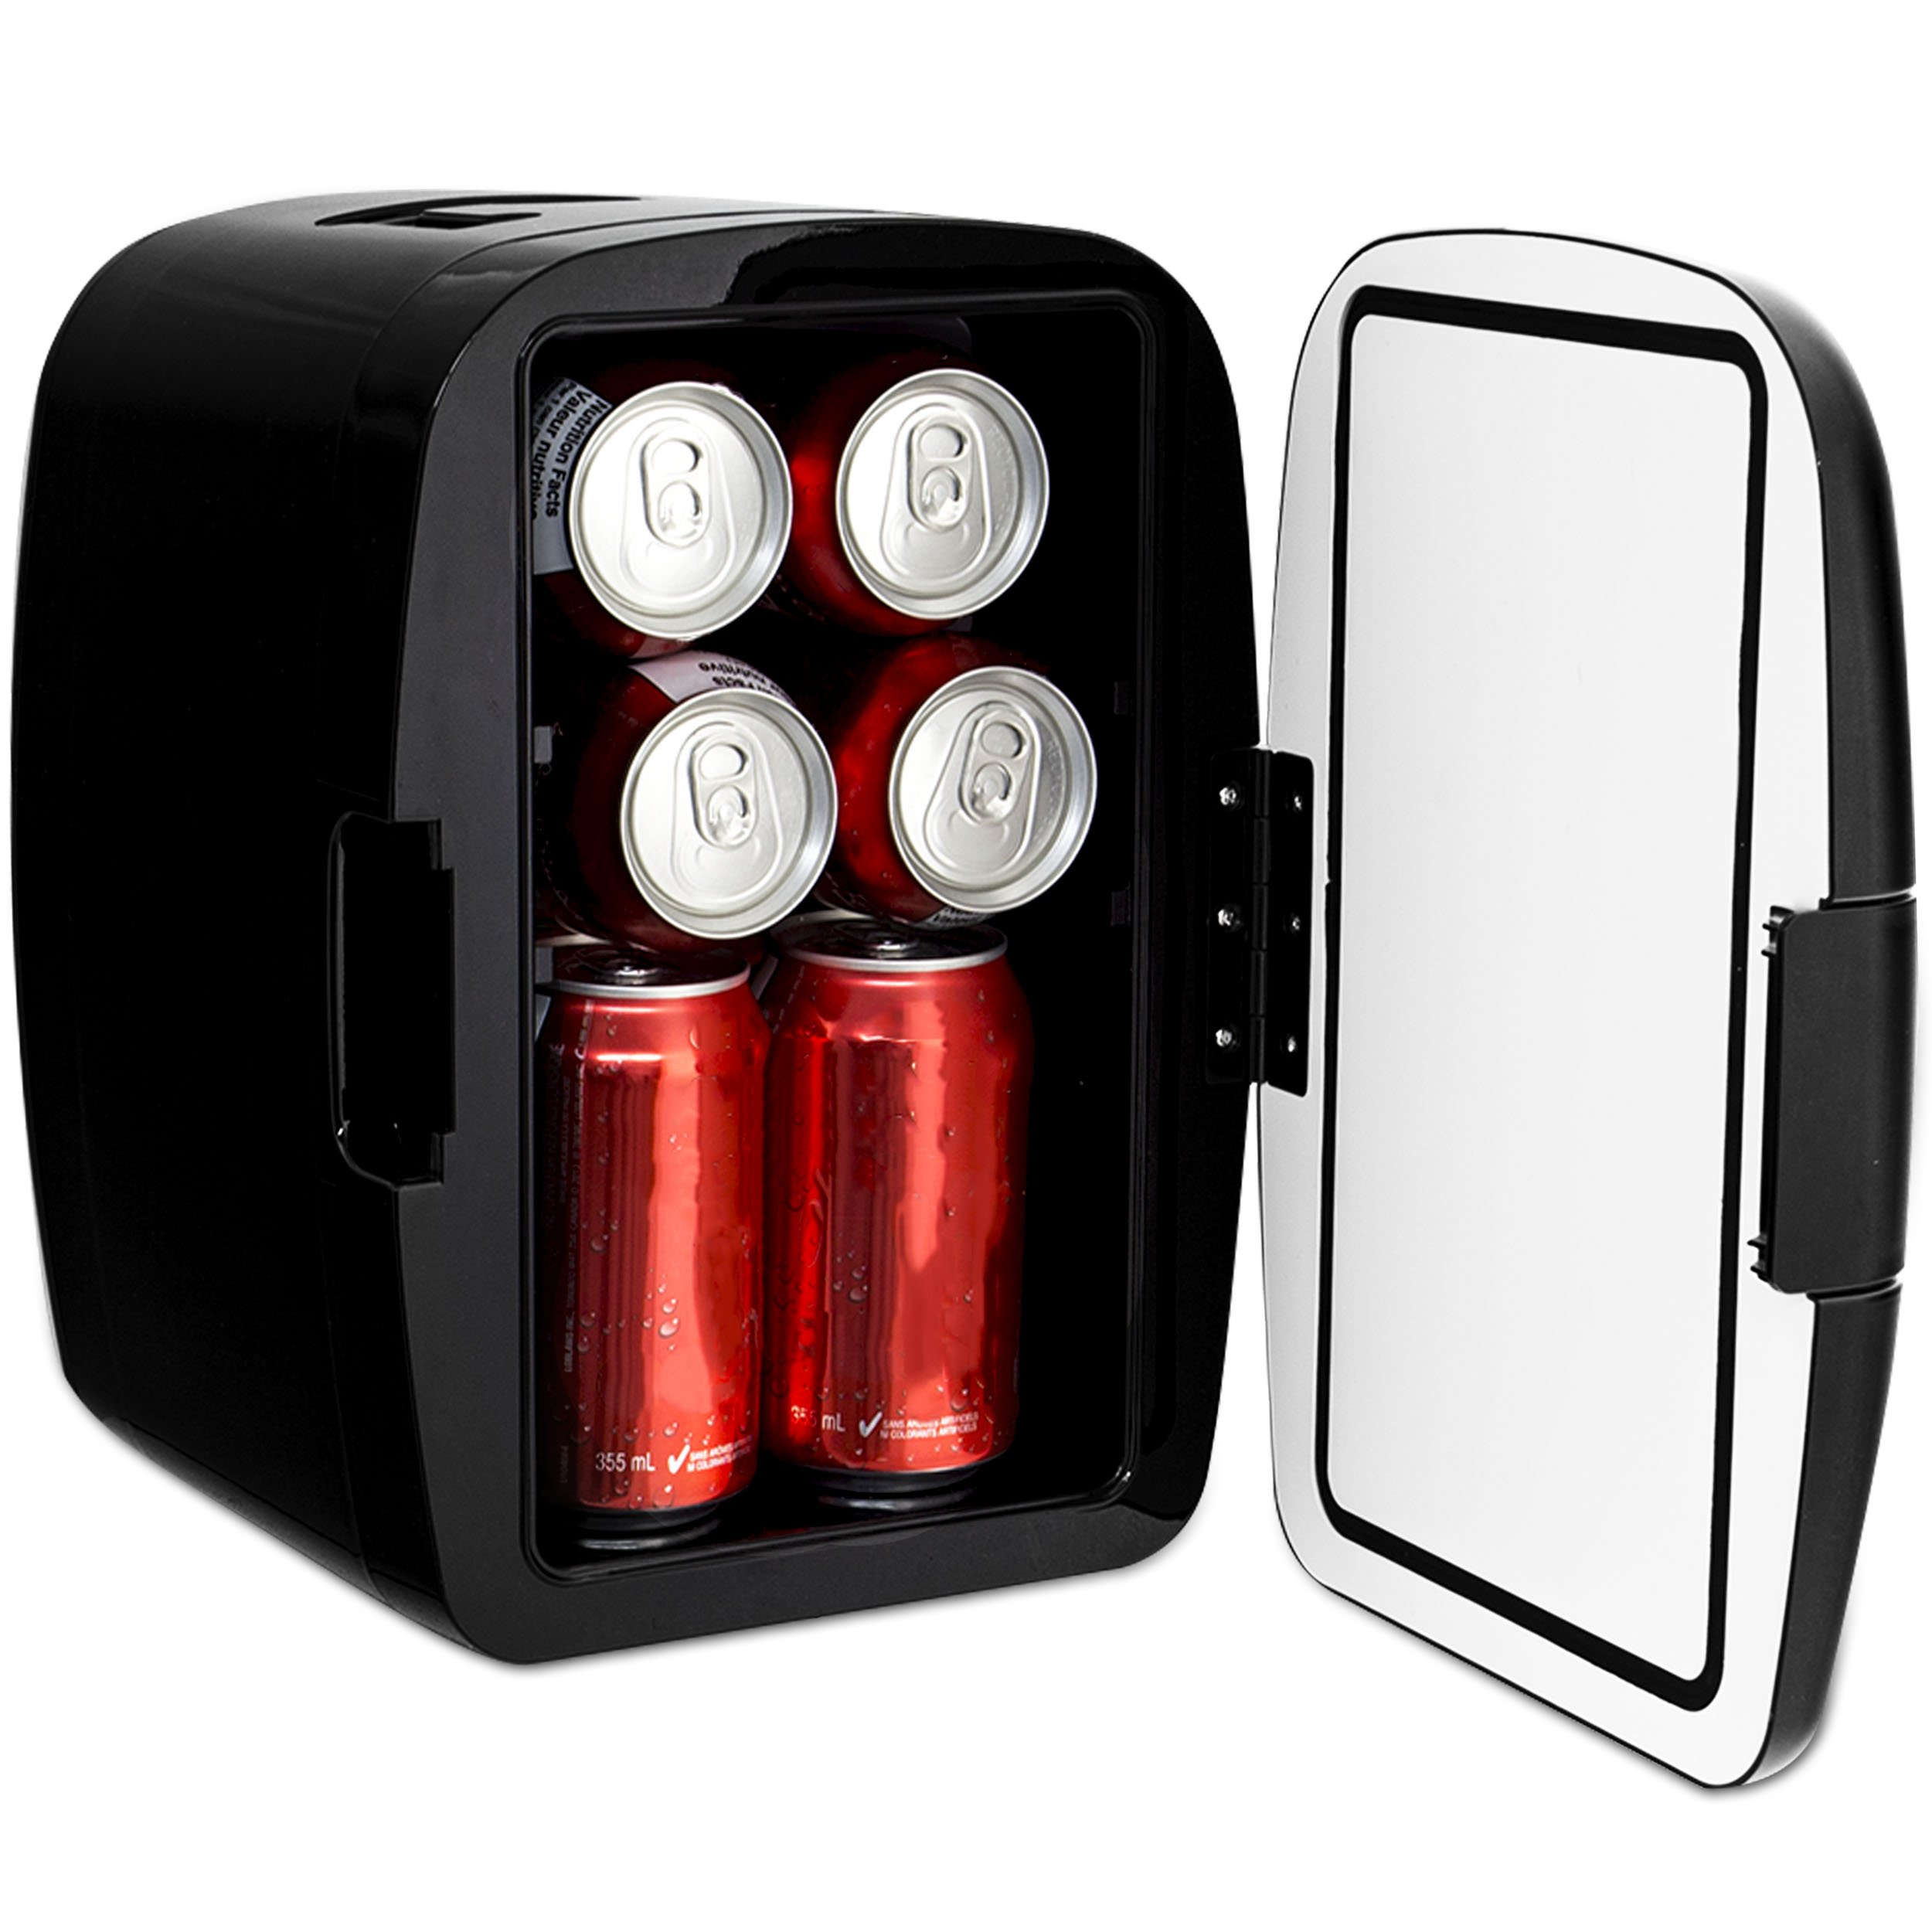 Magnasonic Portable 8 Can Mini Fridge Cooler & Warmer, 5L Capacity, Fully Insulated, Thermoelectric, 110V & 12V AC/DC Power for Home, Office, Car, RV & Boat by Magnasonic (Image #9)